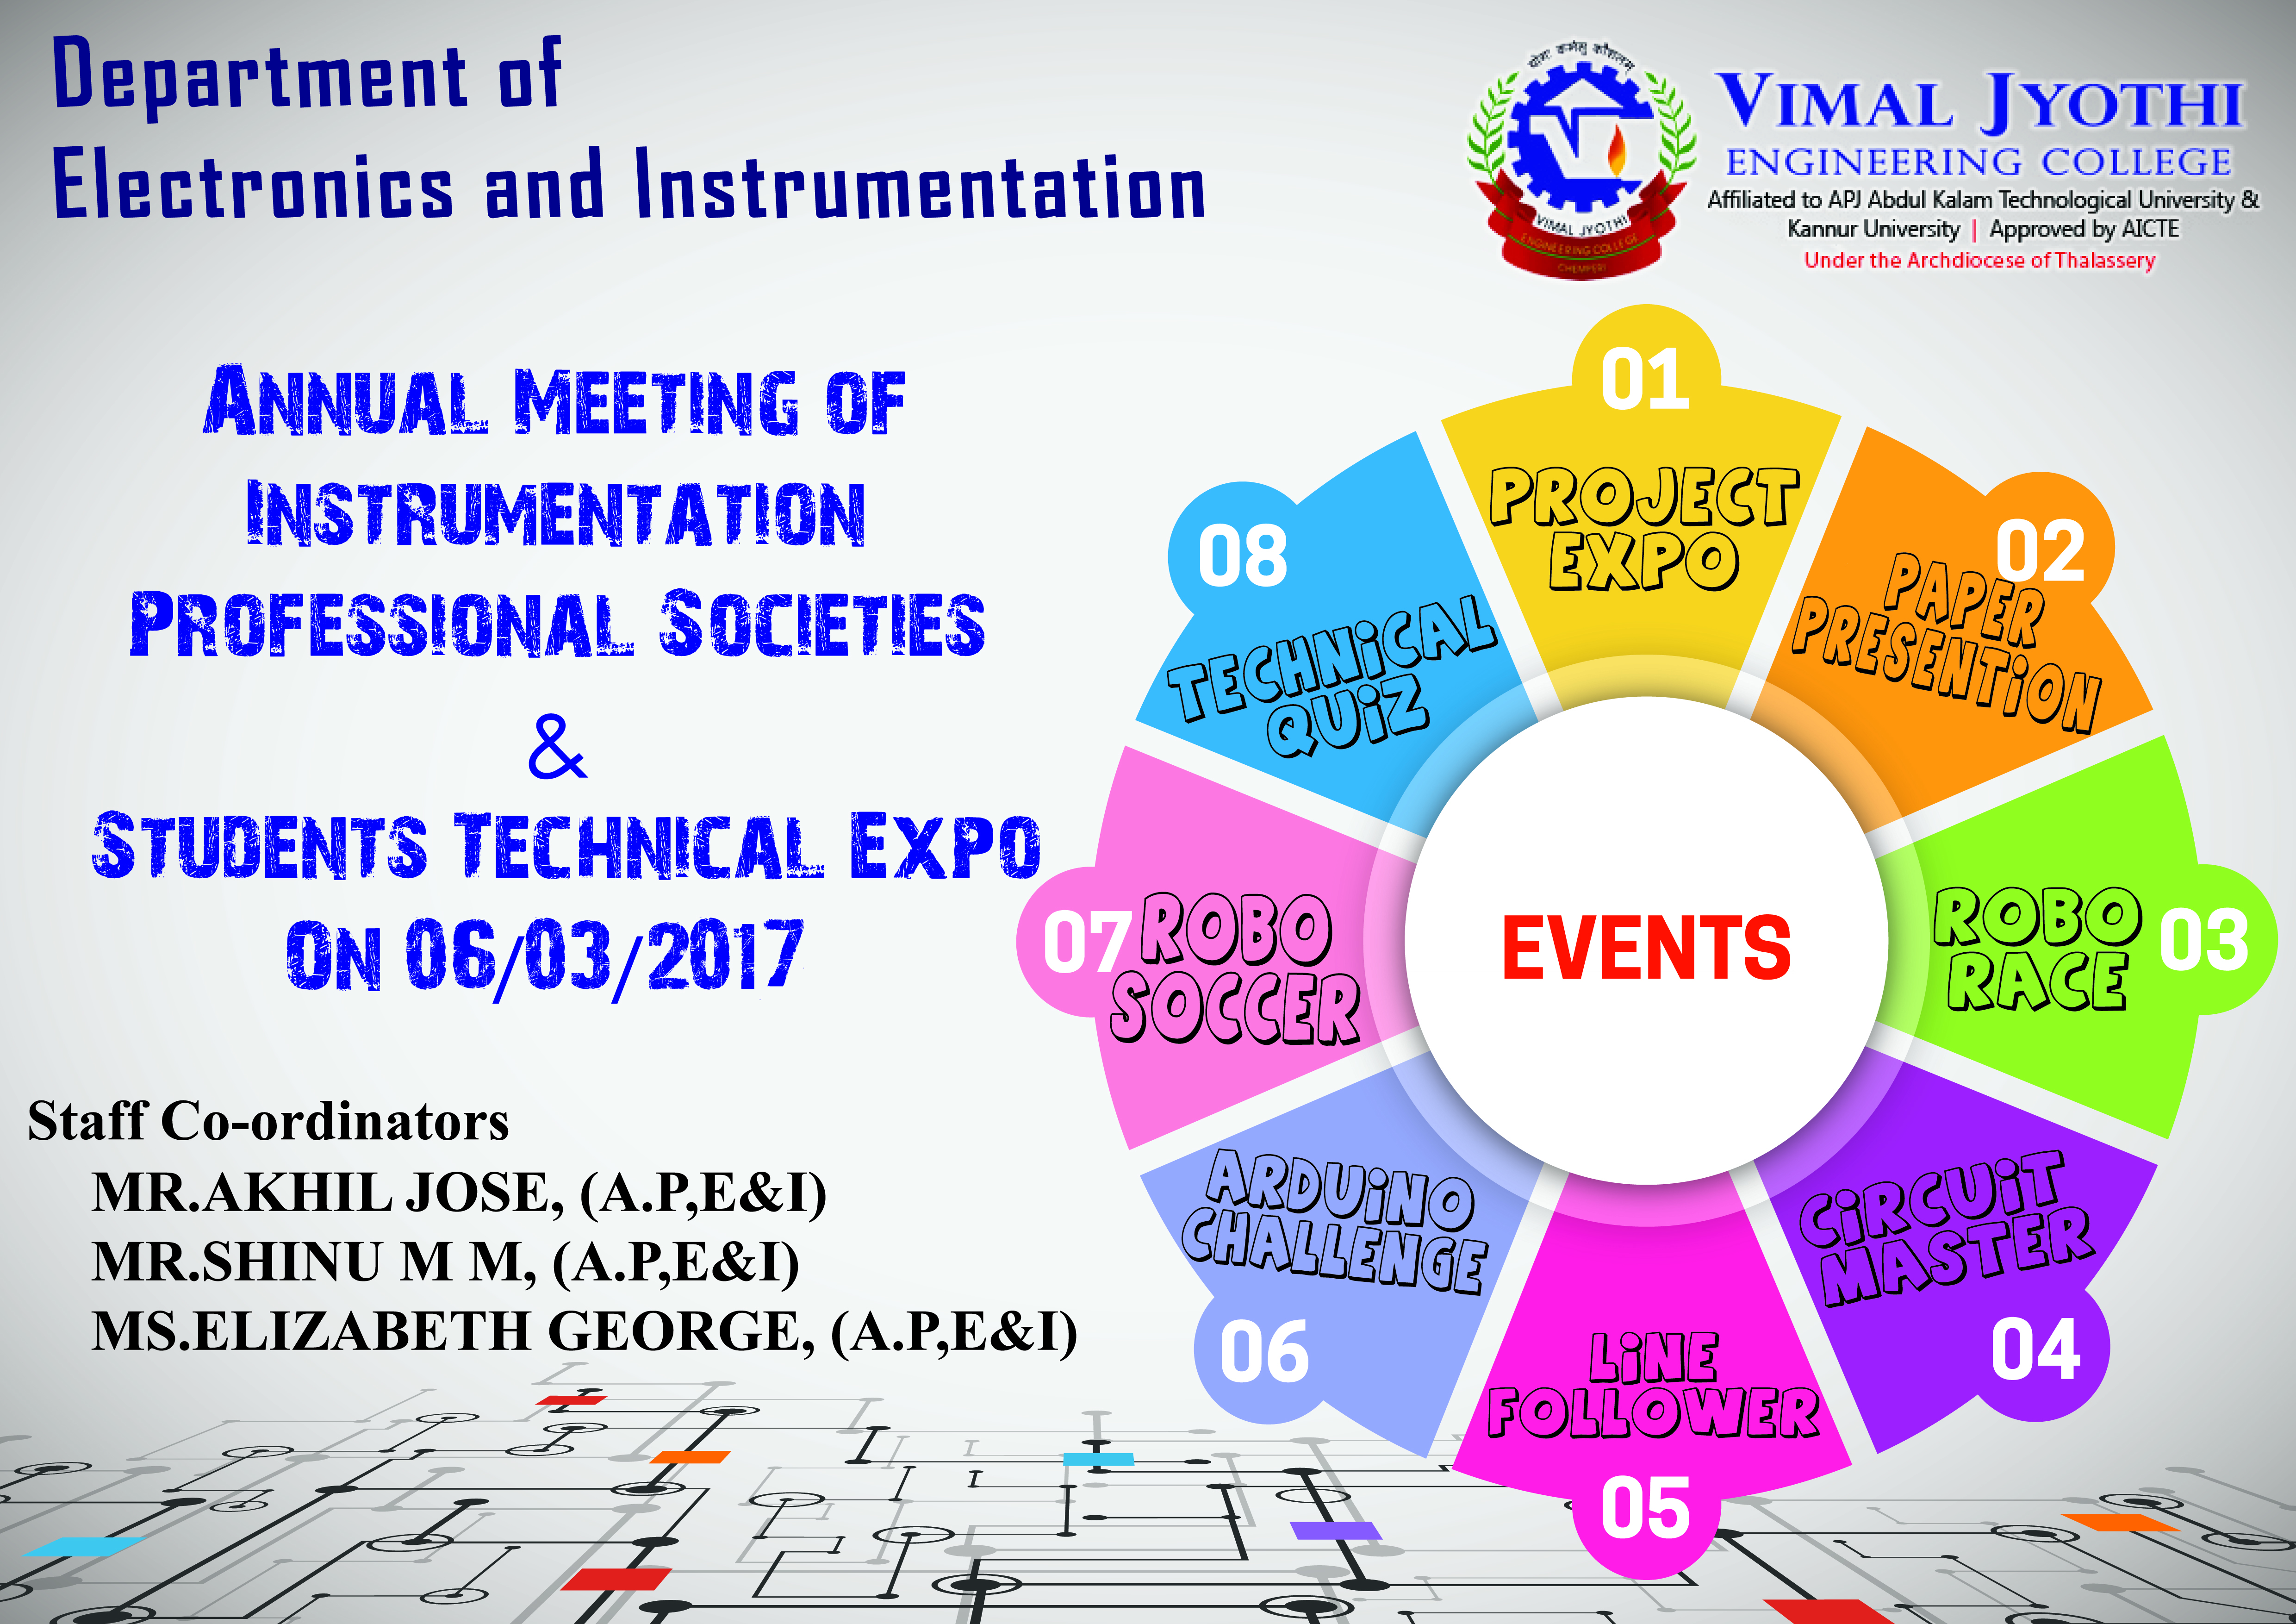 events vimal jyothi engineering college chemperi kannur view more photos